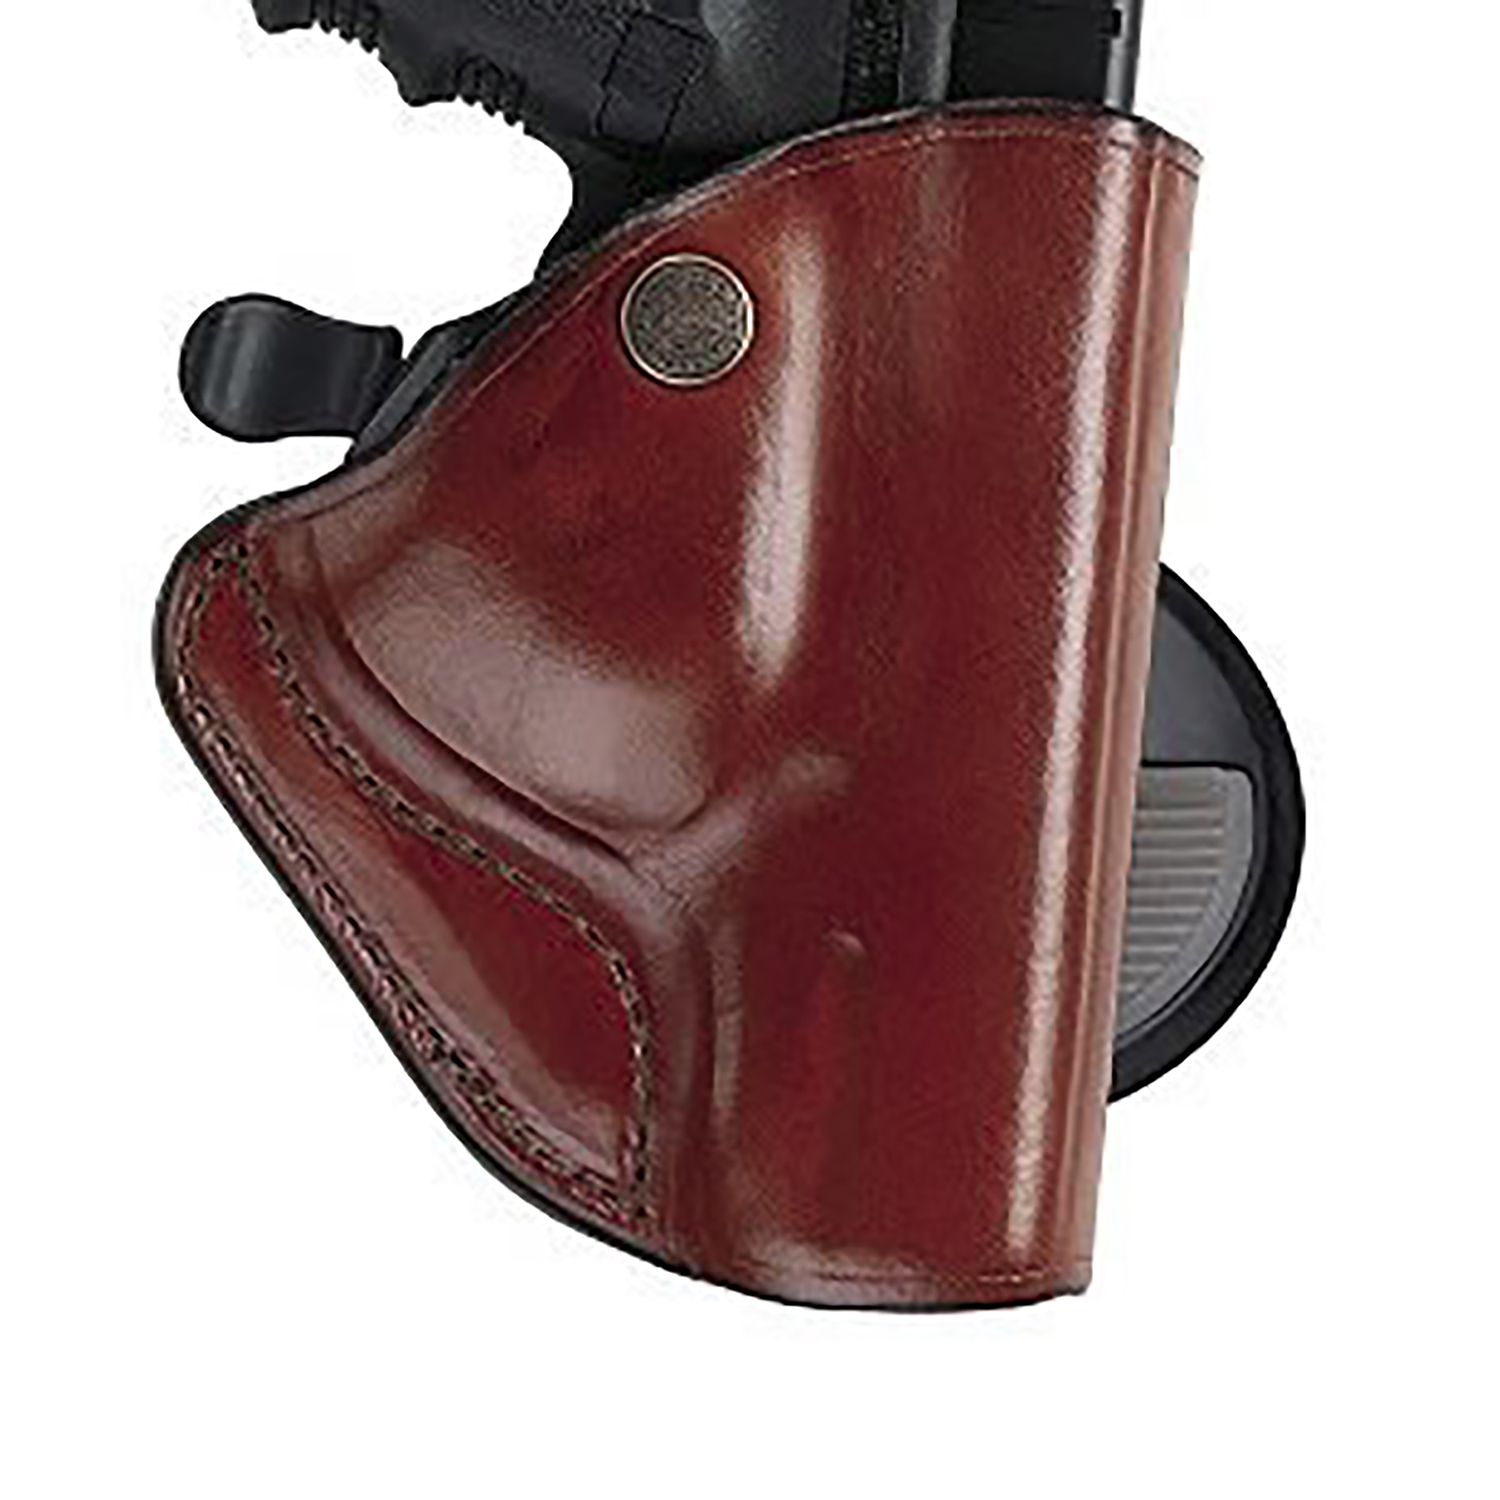 Bianchi Paddle Lok High Ride Holster